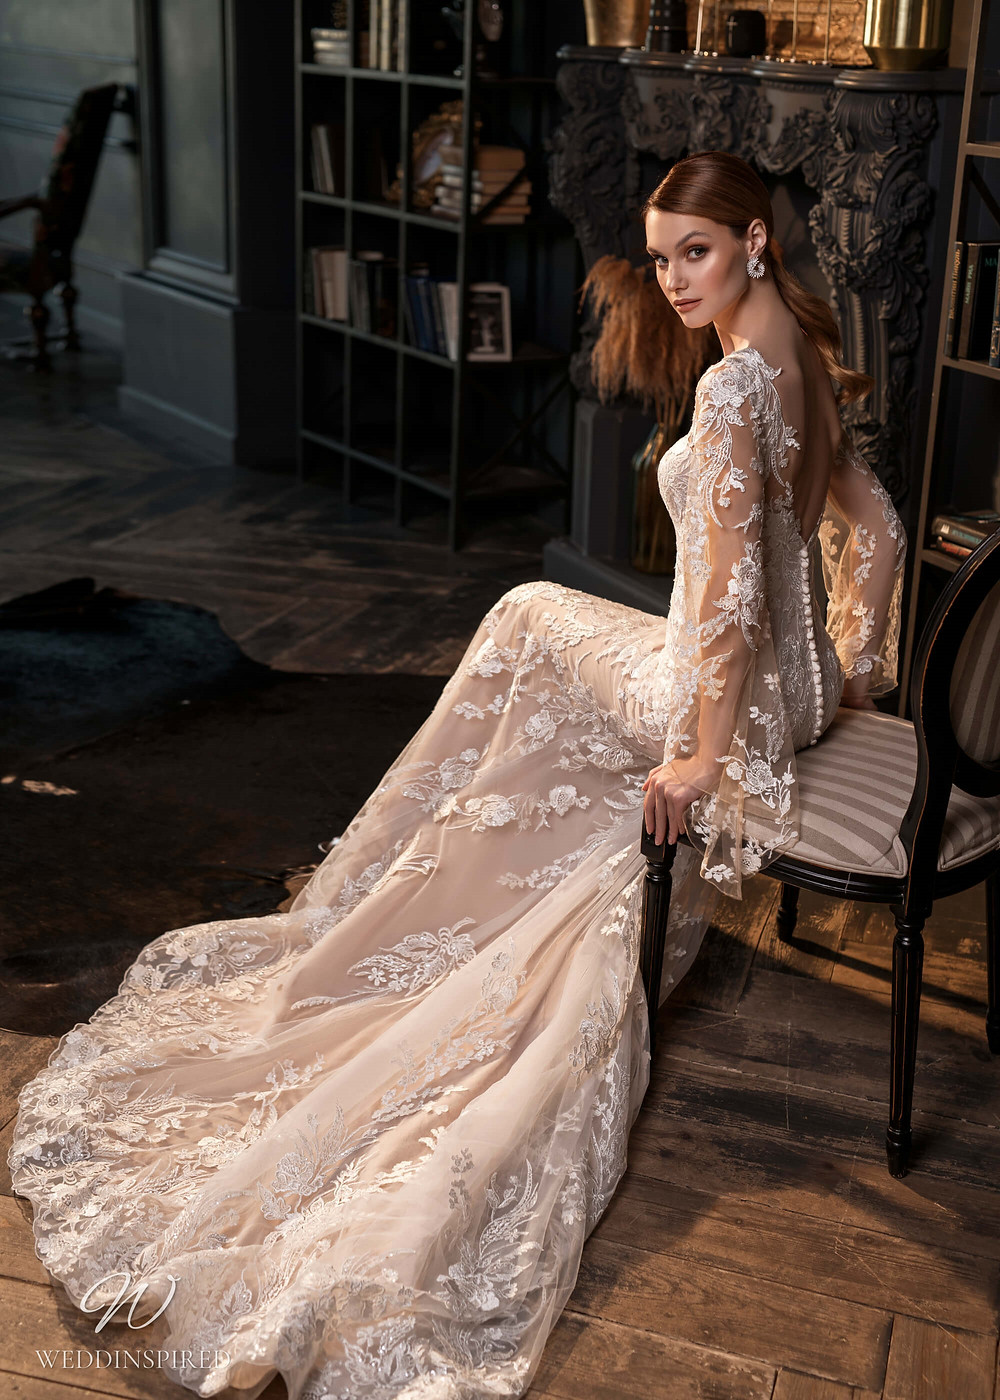 A Naviblue Bridal 2021 blush lace and mesh mermaid fit and flare wedding dress with long illusion sleeves